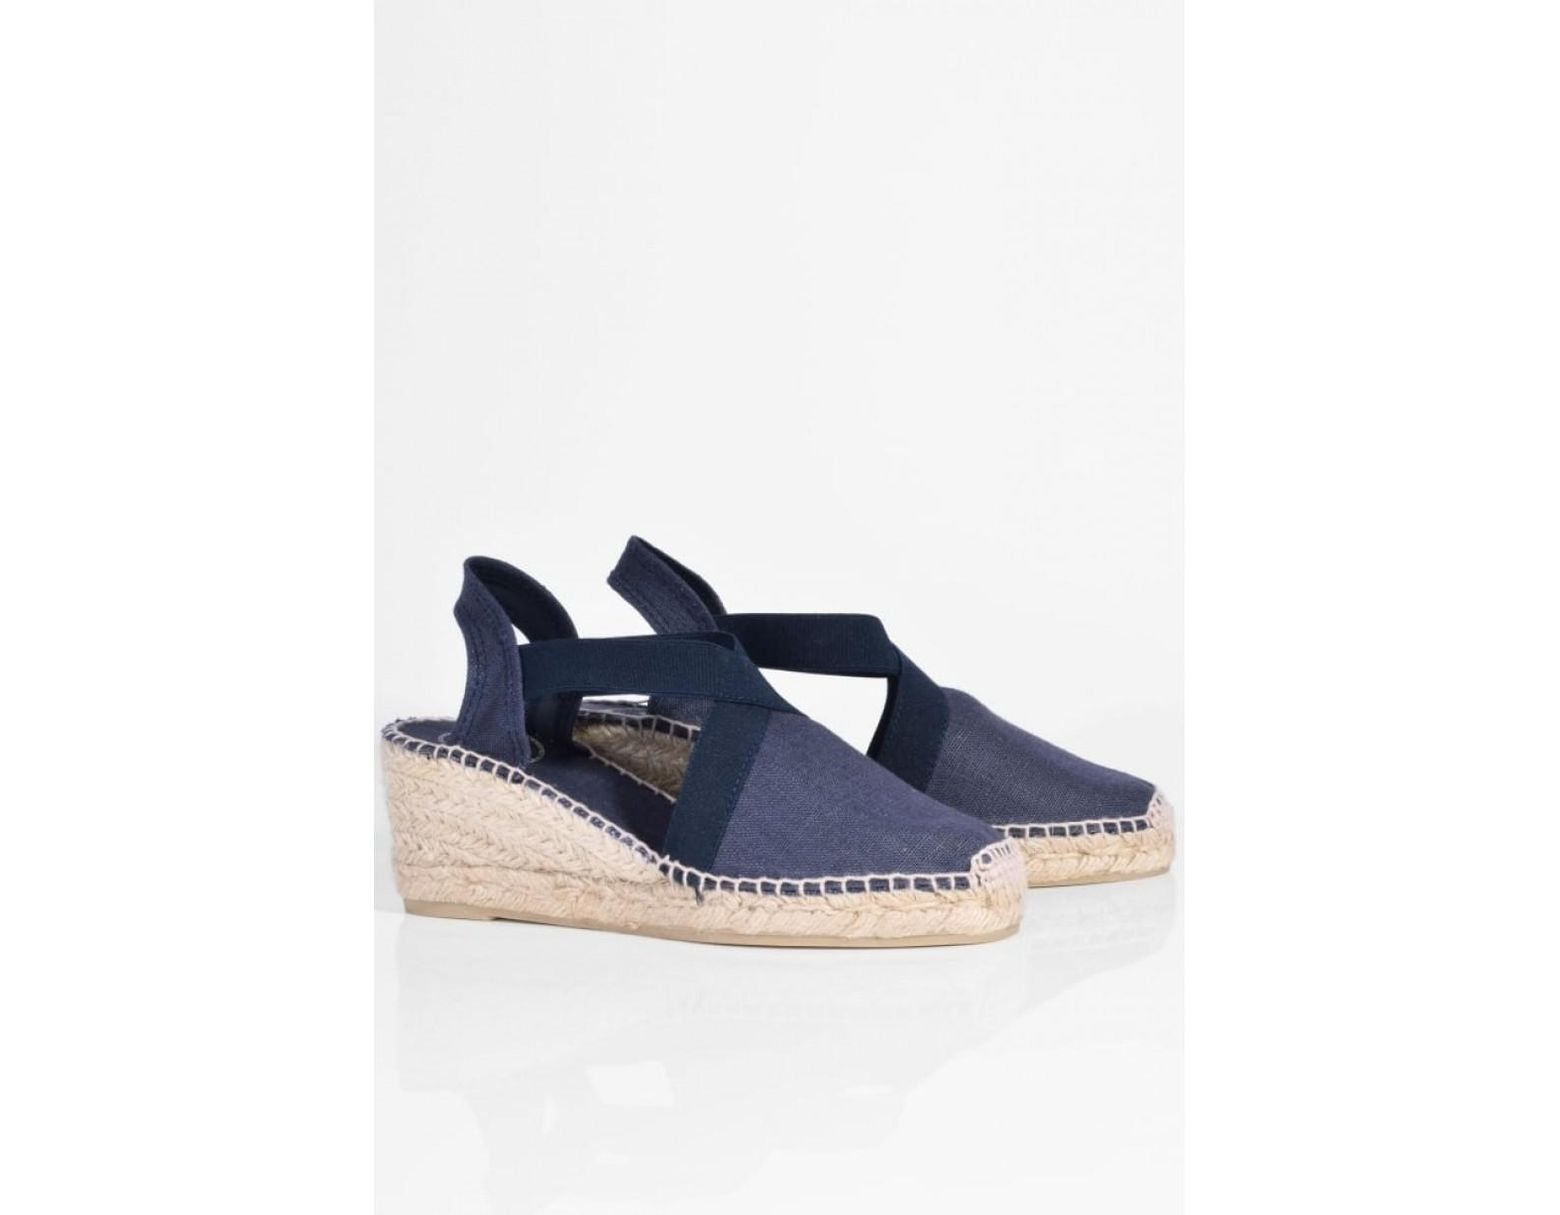 d539d79bc7a Toni Pons Ter Linen Espadrille Wedge in Blue - Lyst